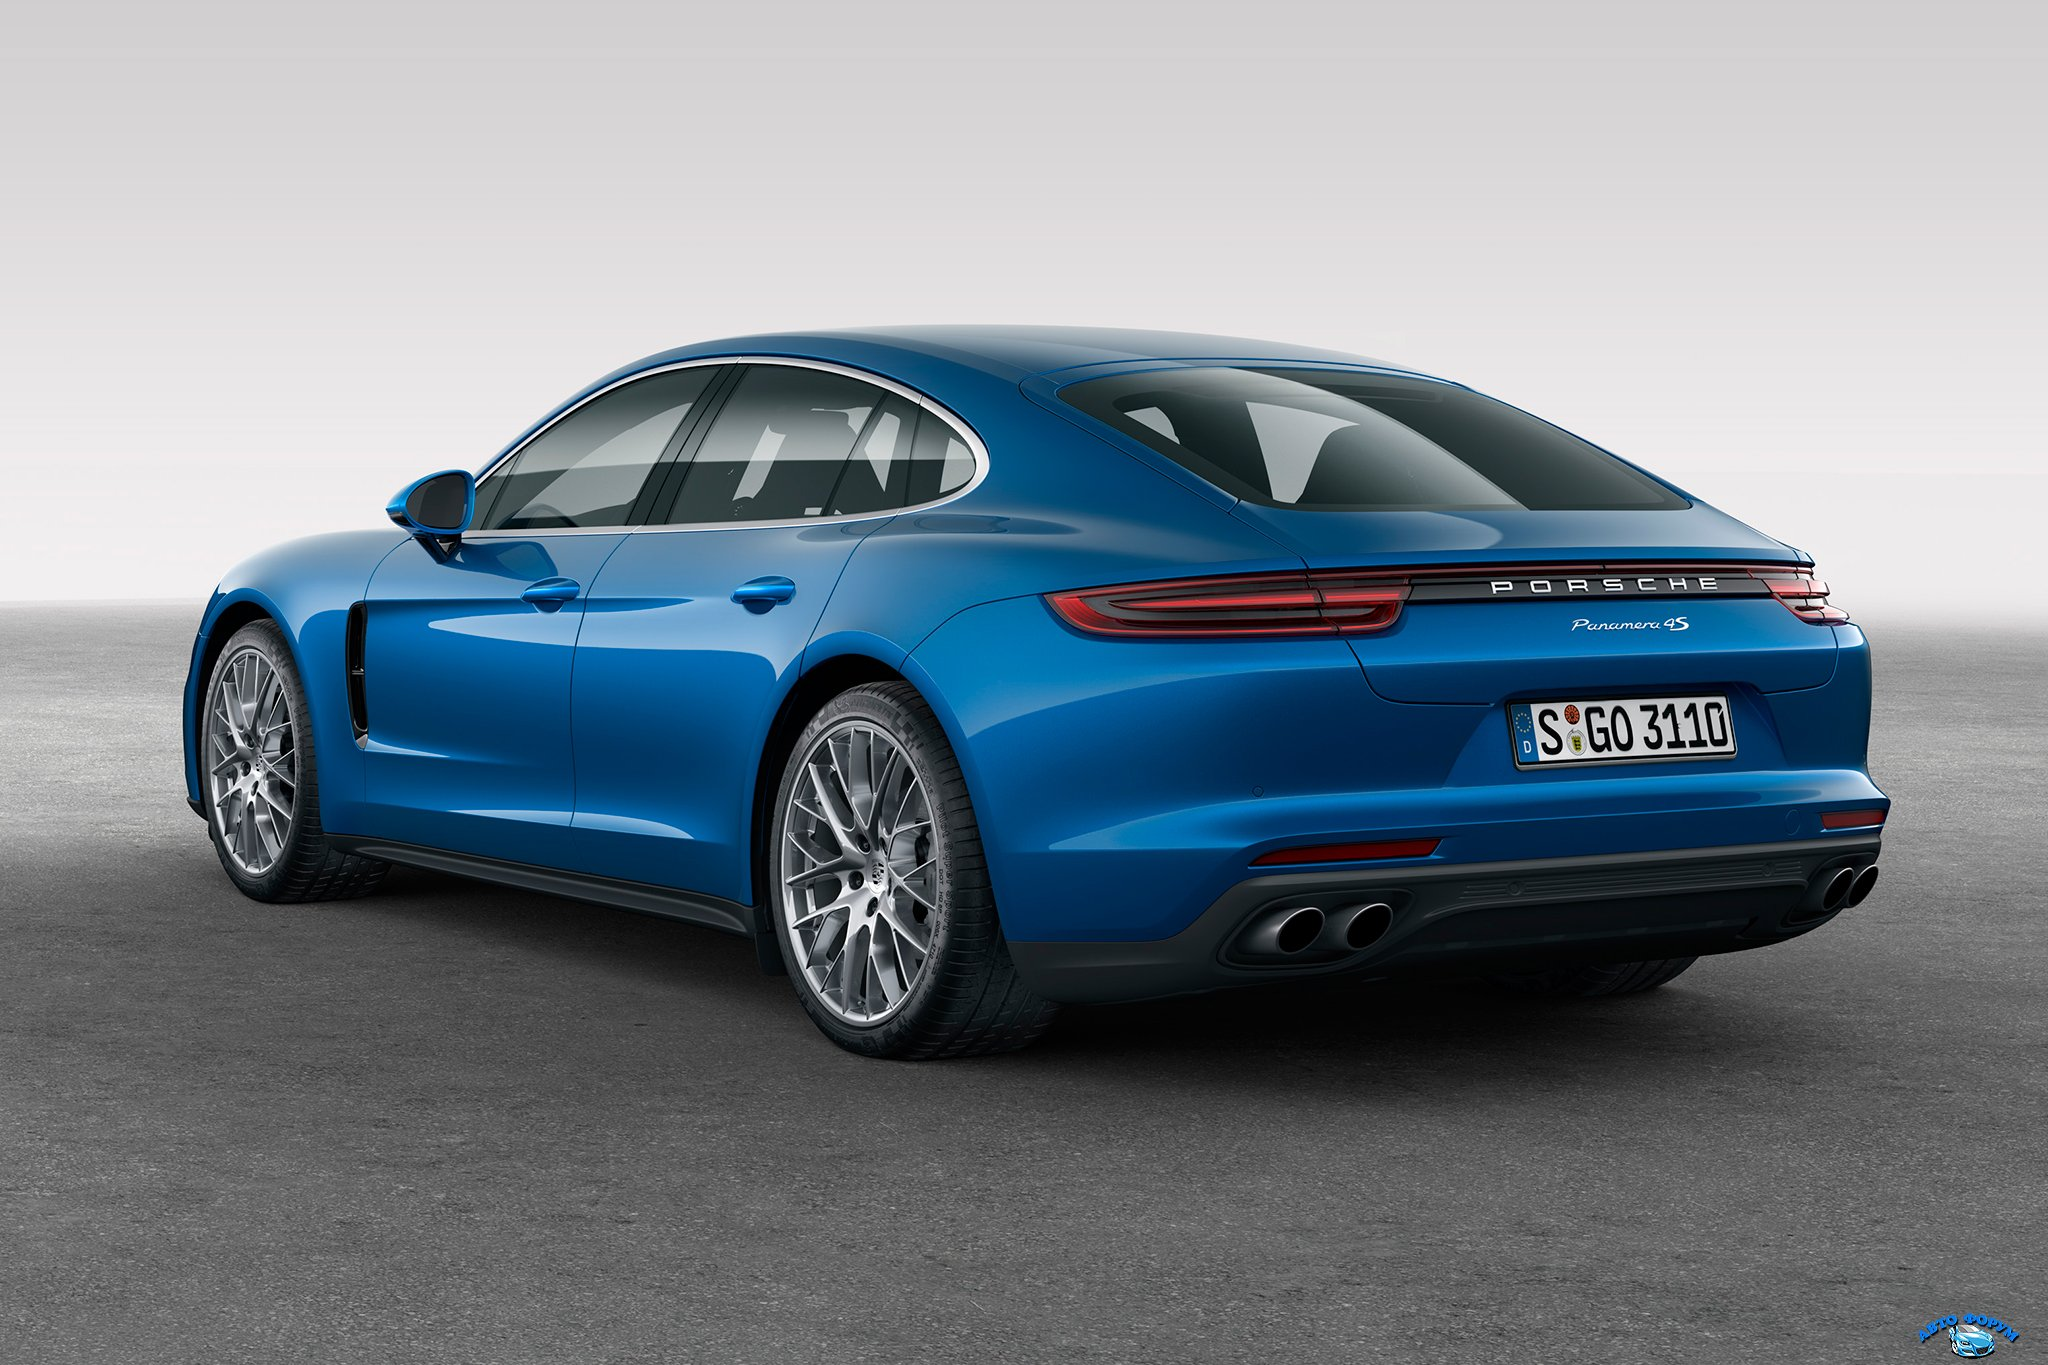 2017-Porsche-Panamera-4S-rear-three-quarter.jpg